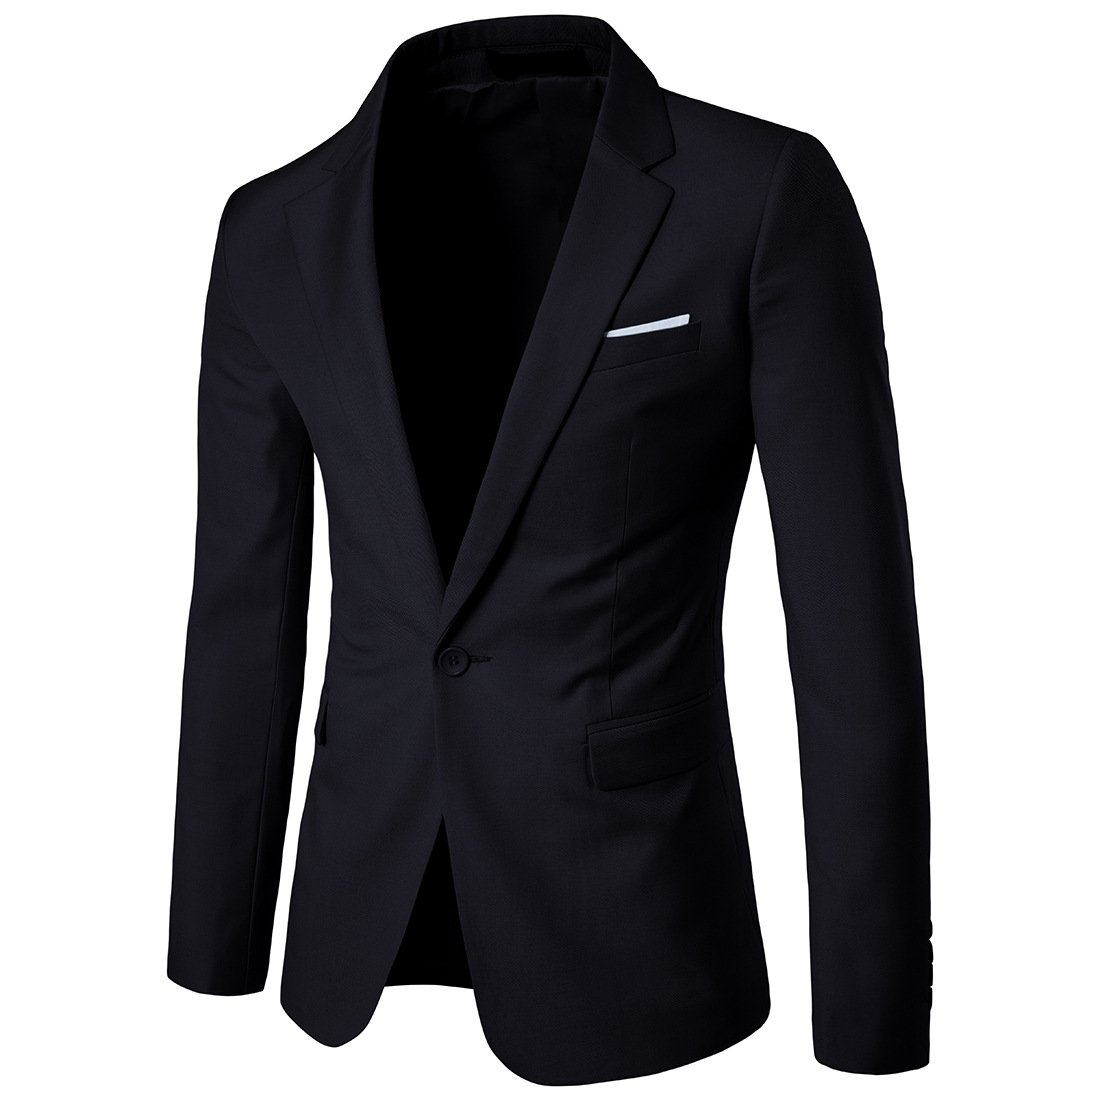 WULFUL Men's Slim Fit Suit One Button Suit Coat Casual Business Lapel Blazers Jacket by WULFUL